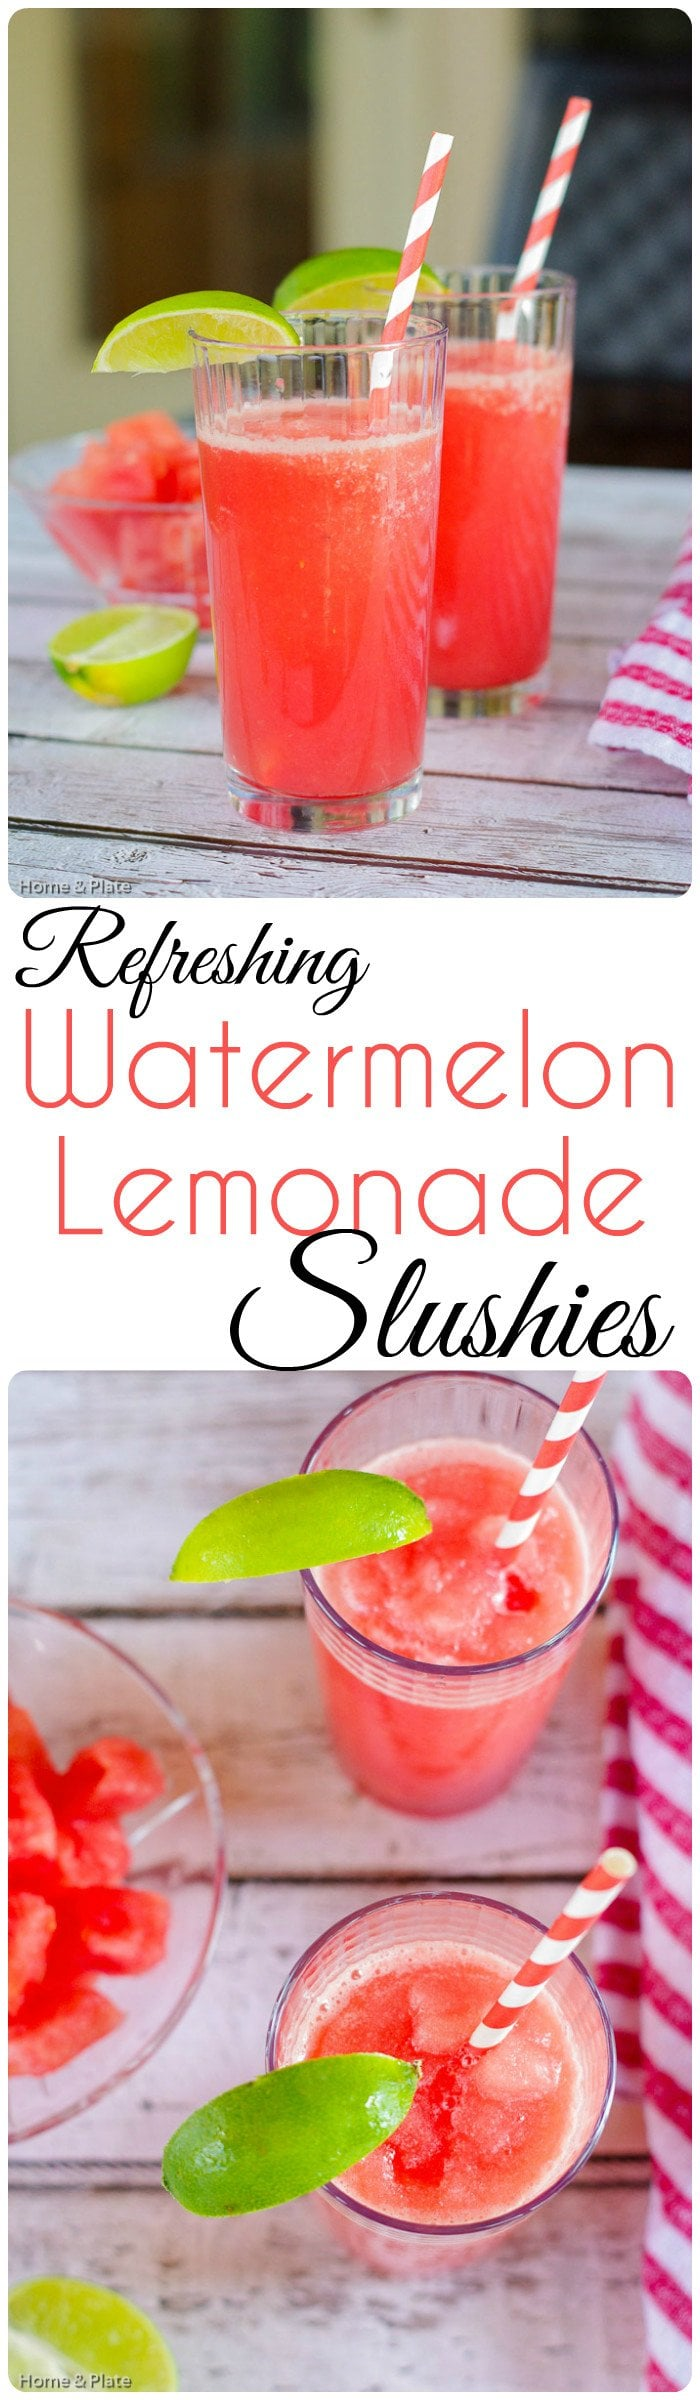 Refreshing Watermelon Lemonade Slushies | Home & Plate | www.homeandplate.com | Watermelon and lemonade are two great ways to stay cool during the dog days of summer.